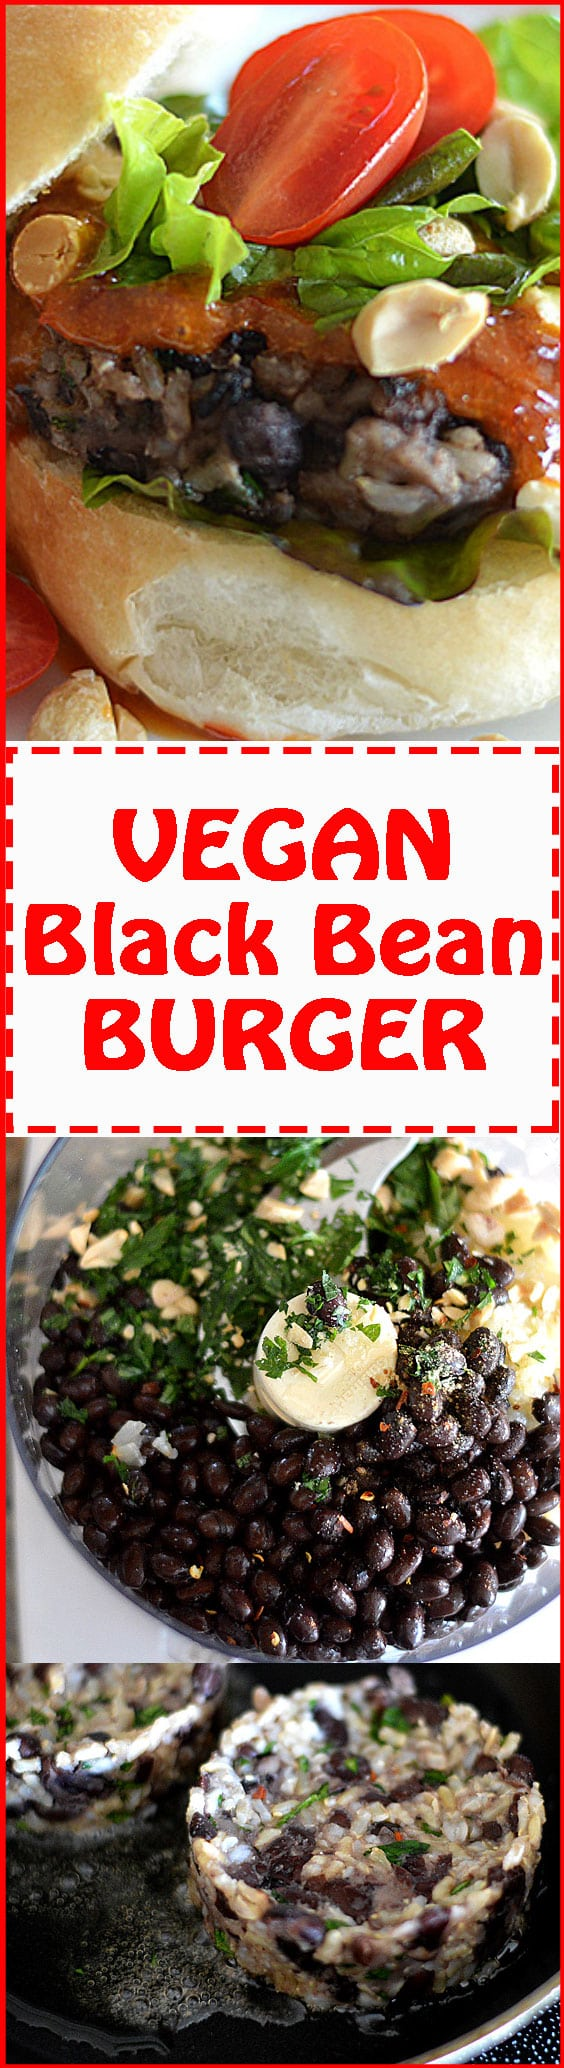 BLACK-BEAN-BURGER-PINTEREST